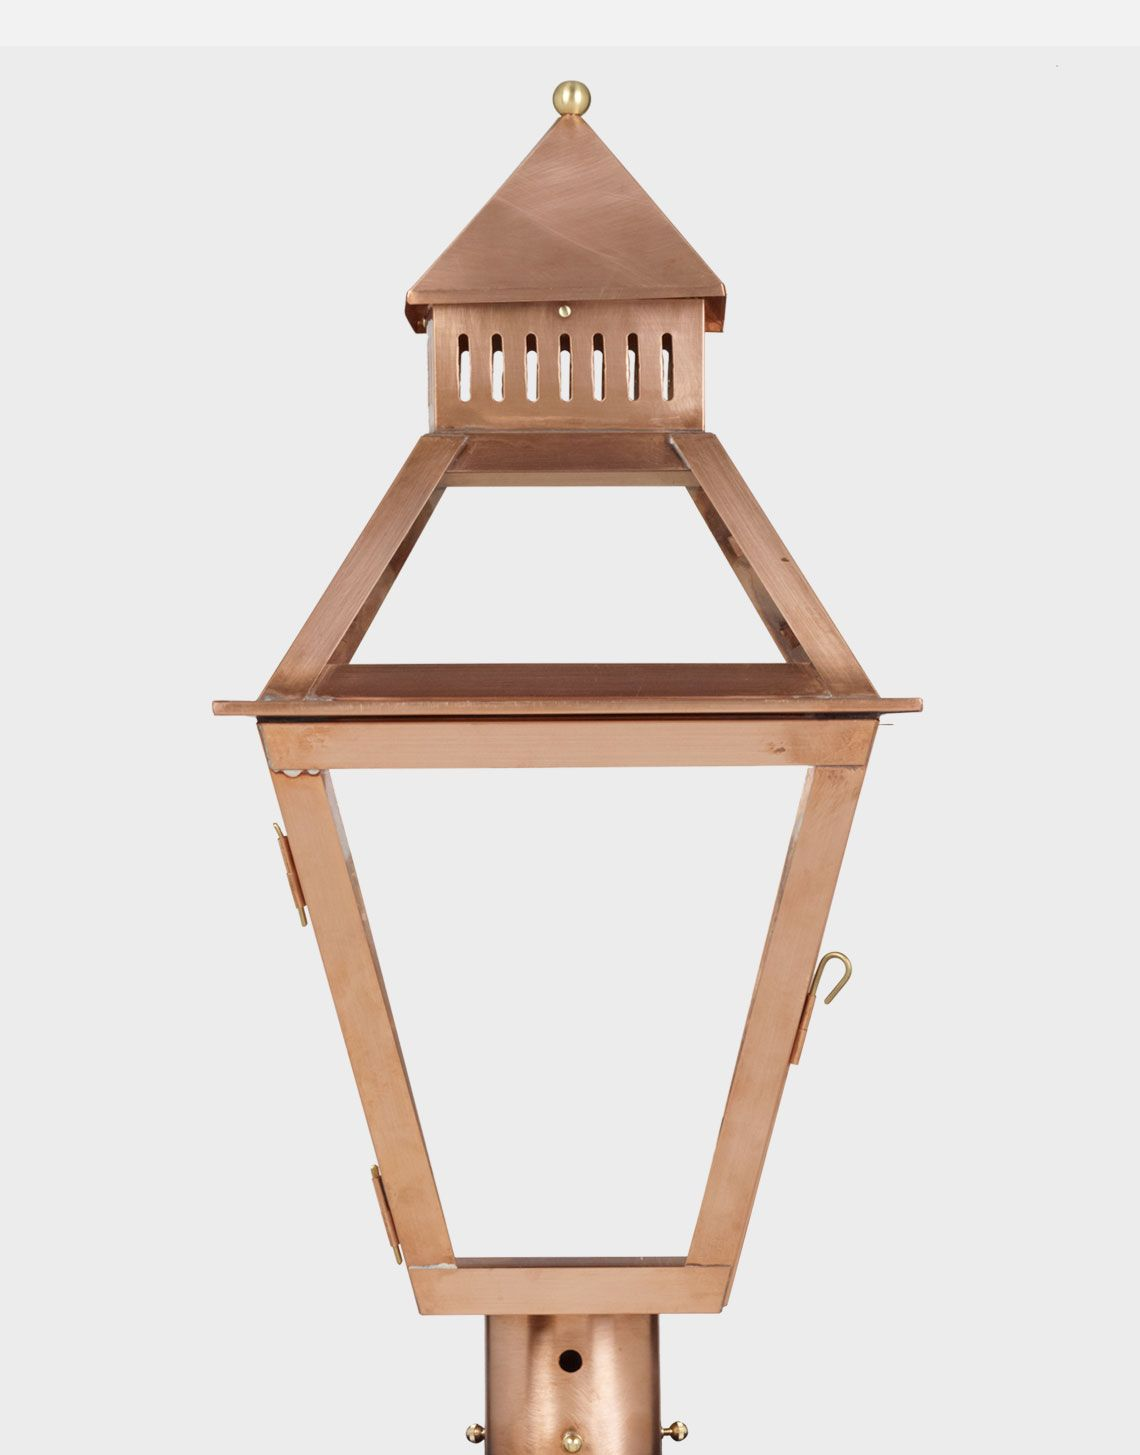 Outdoor solid copper gas lanterns lamps fixtures and lighting 11 outdoor solid copper gas lanterns lamps fixtures and lighting arubaitofo Image collections